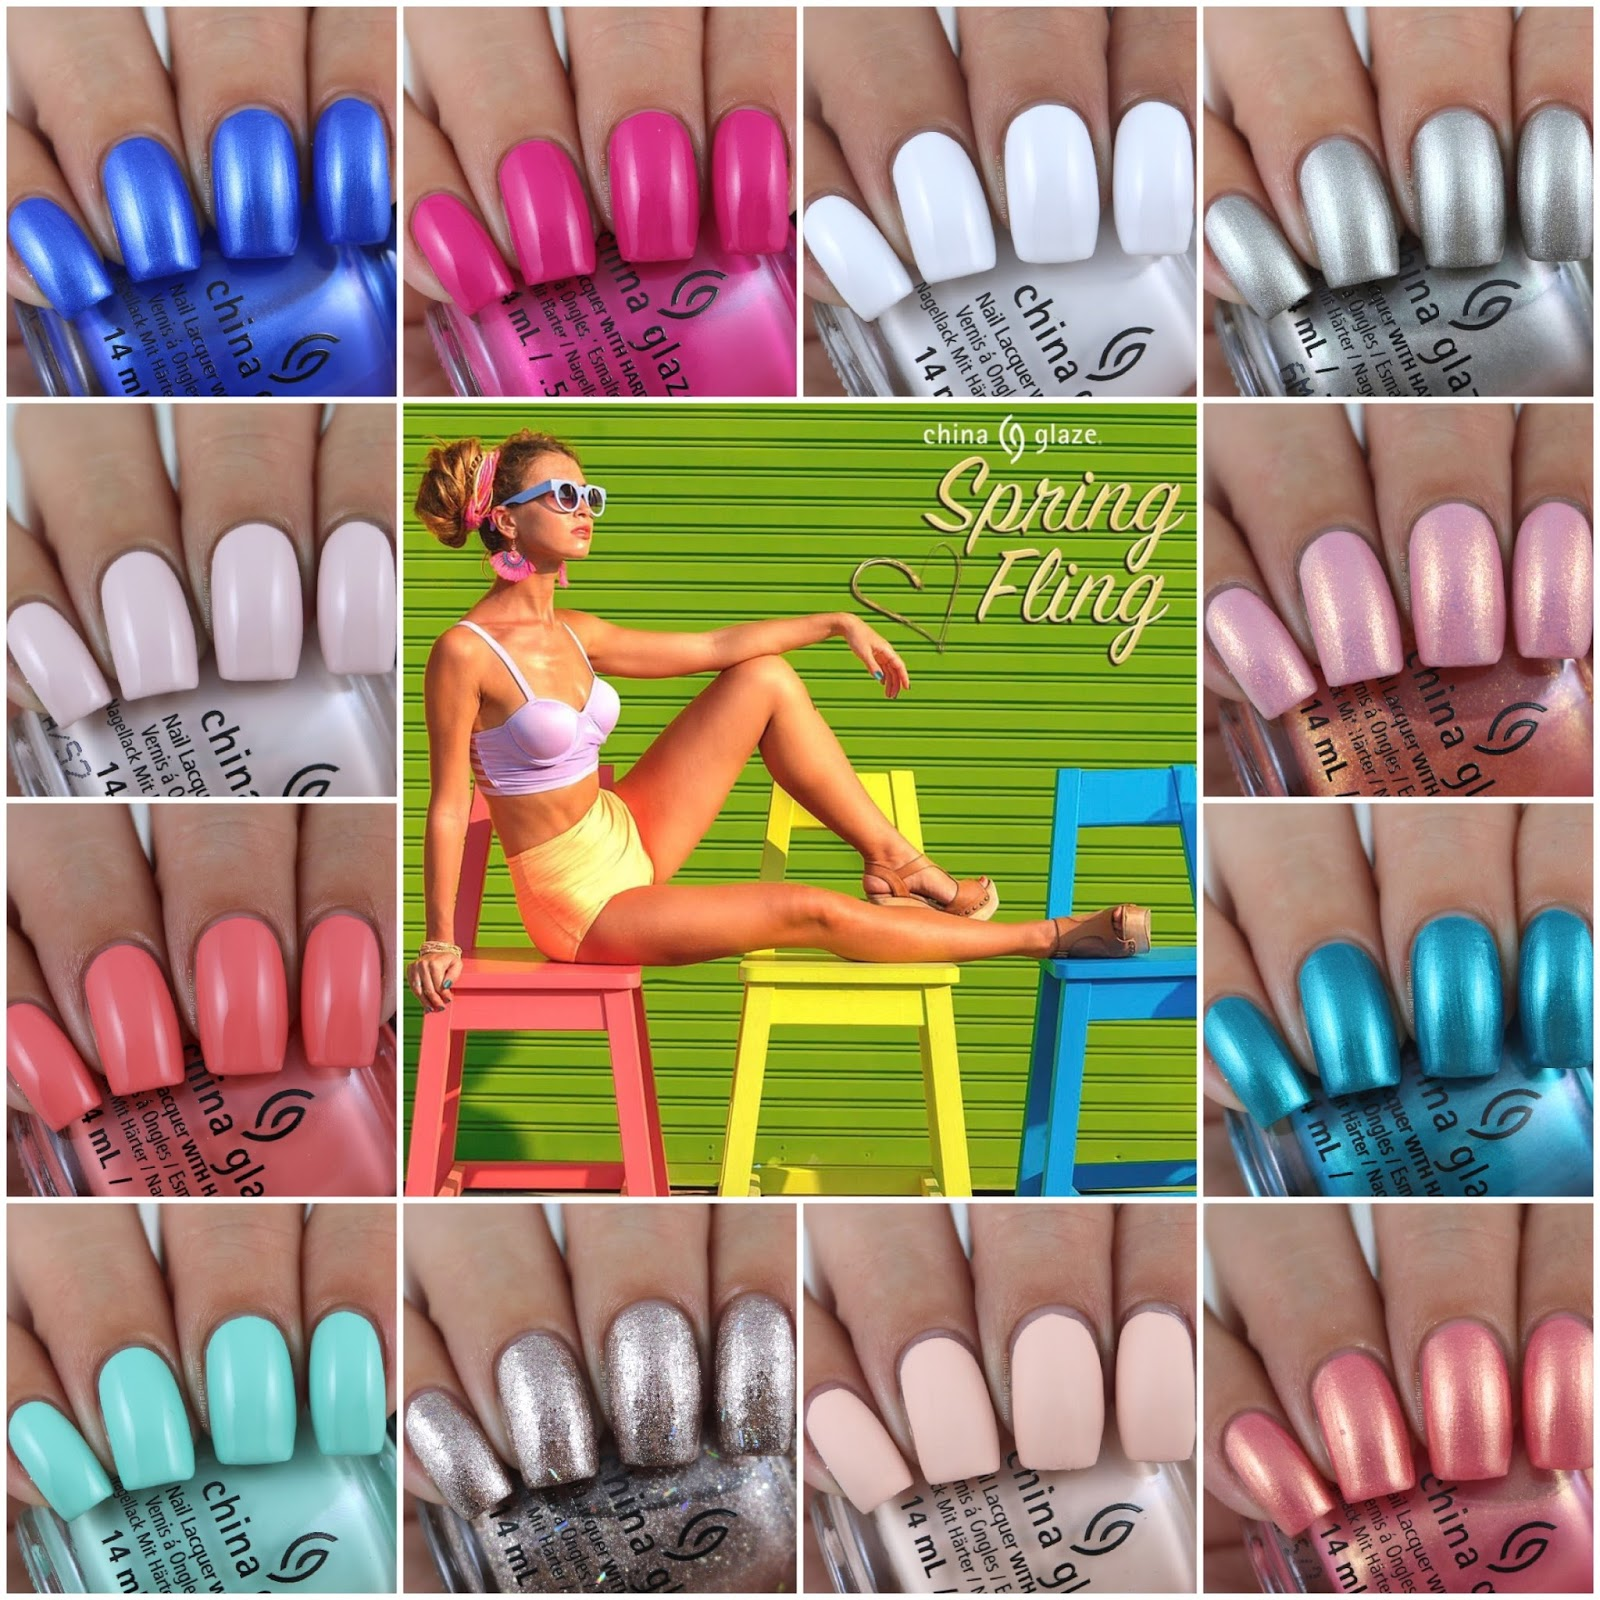 Olivia jade nails china glaze spring fling collection swatches beach nvjuhfo Gallery